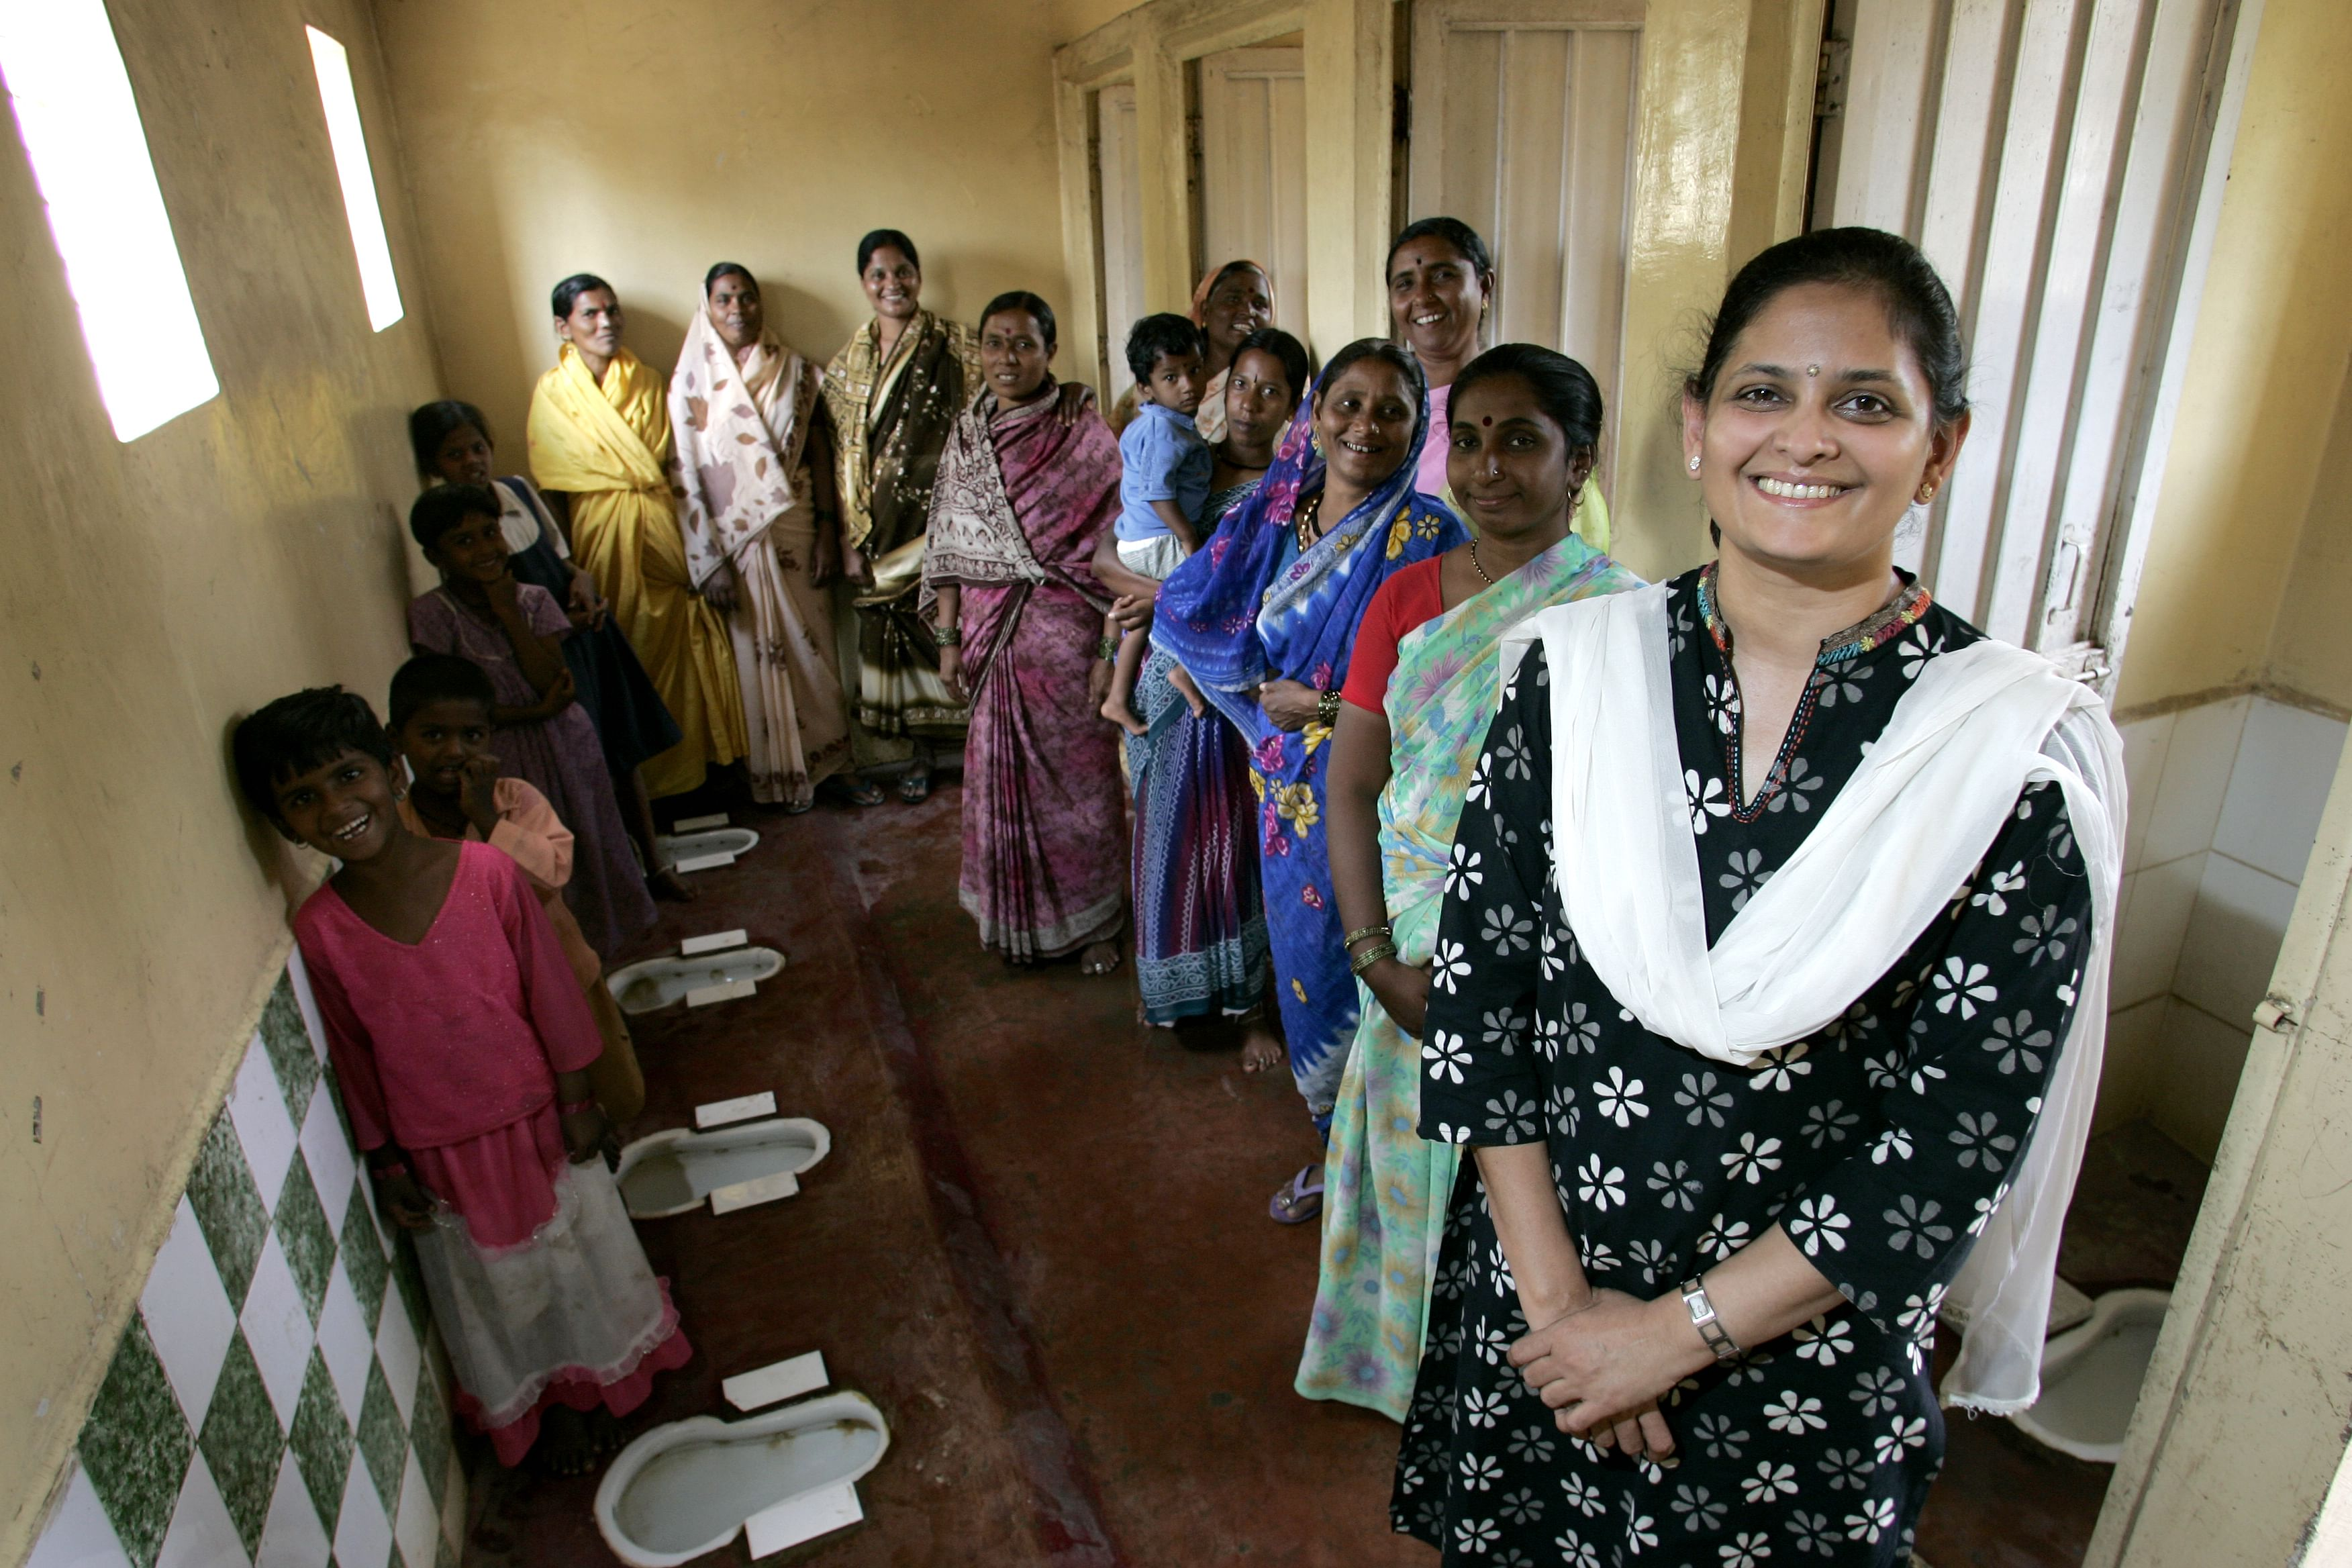 Pratima Joshi (front) spearheaded the initiative to make slums a better place.